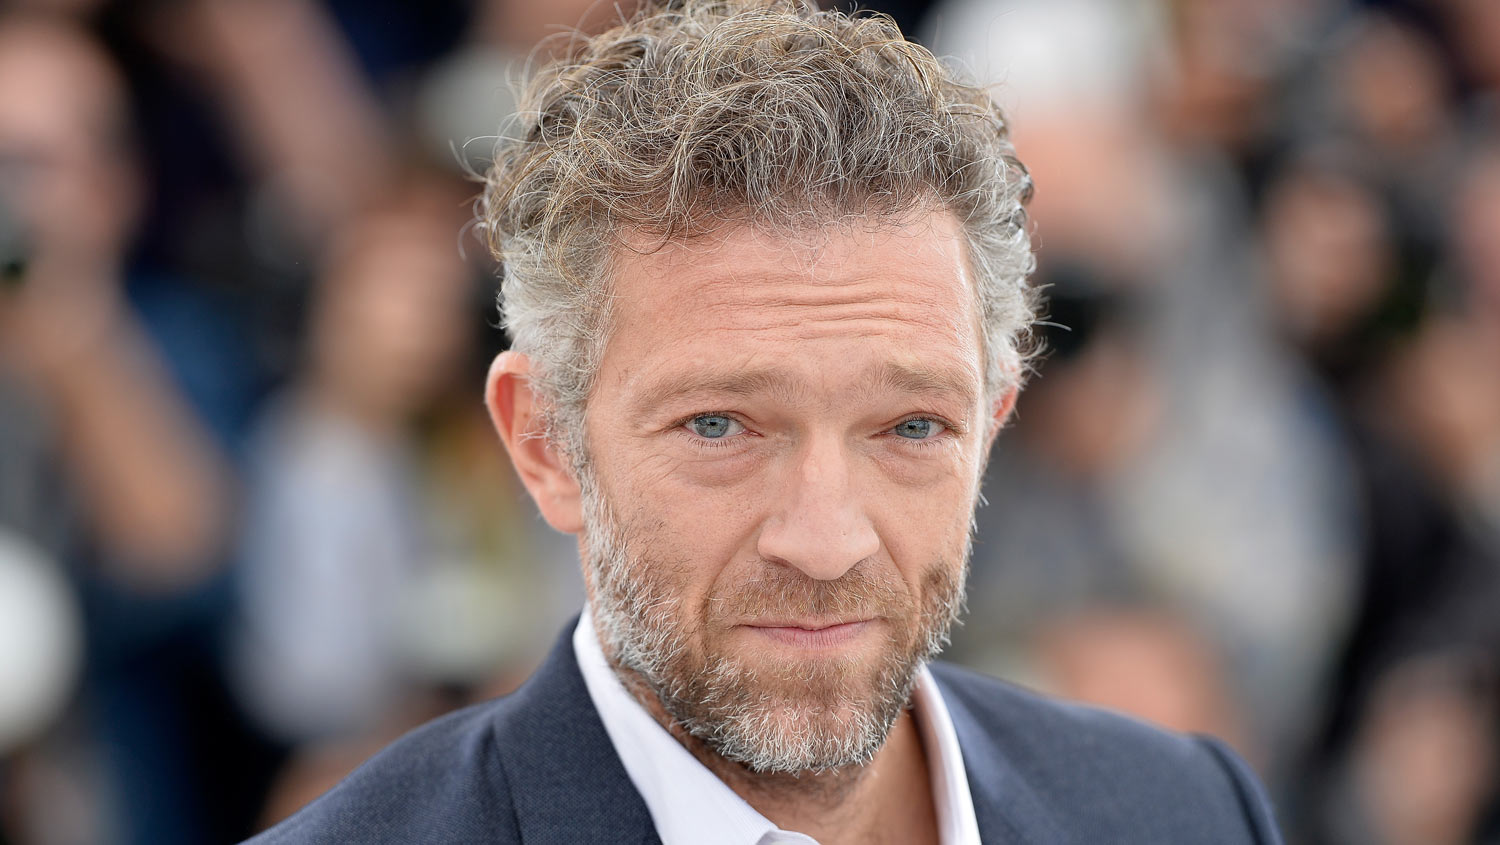 vincent cassel dancevincent cassel filmi, vincent cassel movies, vincent cassel instagram, vincent cassel 2016, vincent cassel tina, vincent cassel 2017, vincent cassel film, vincent cassel tina kunakey, vincent cassel wiki, vincent cassel height, vincent cassel gif, vincent cassel ulug'bek, vincent cassel interview, vincent cassel daughters, vincent cassel filmography, vincent cassel insta, vincent cassel dance, vincent cassel filmleri, vincent cassel vk, vincent cassel imdb